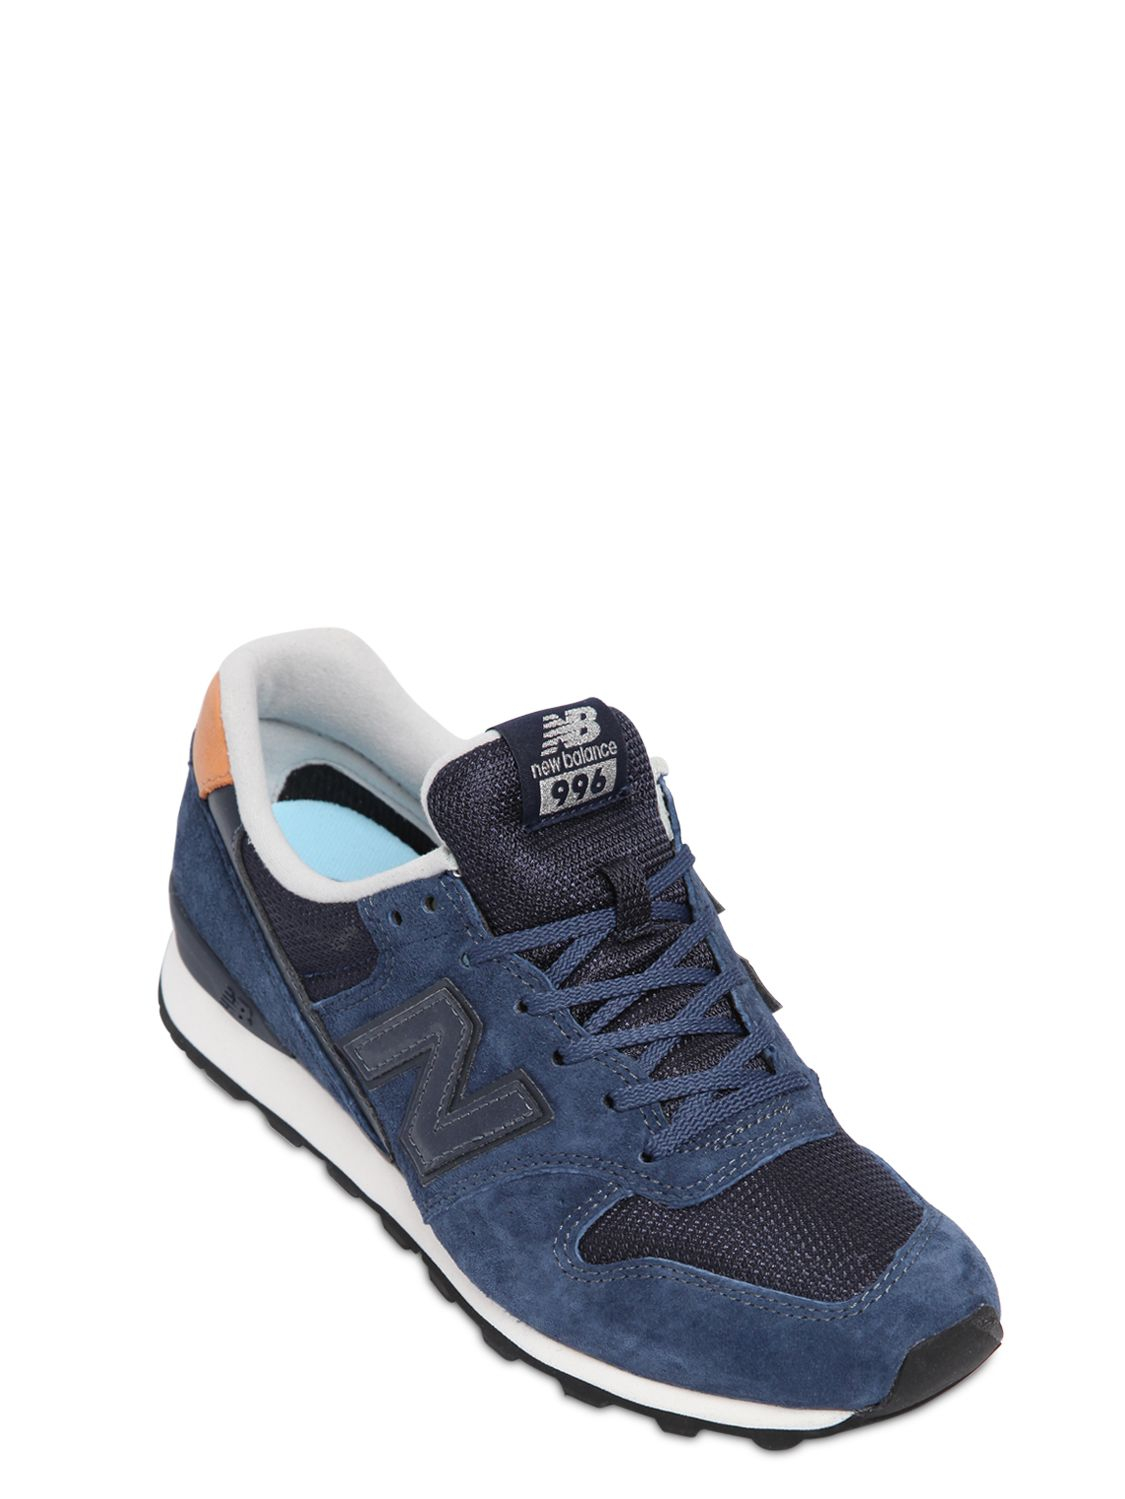 new balance 996 suede sneakers philly diet doctor dr. Black Bedroom Furniture Sets. Home Design Ideas